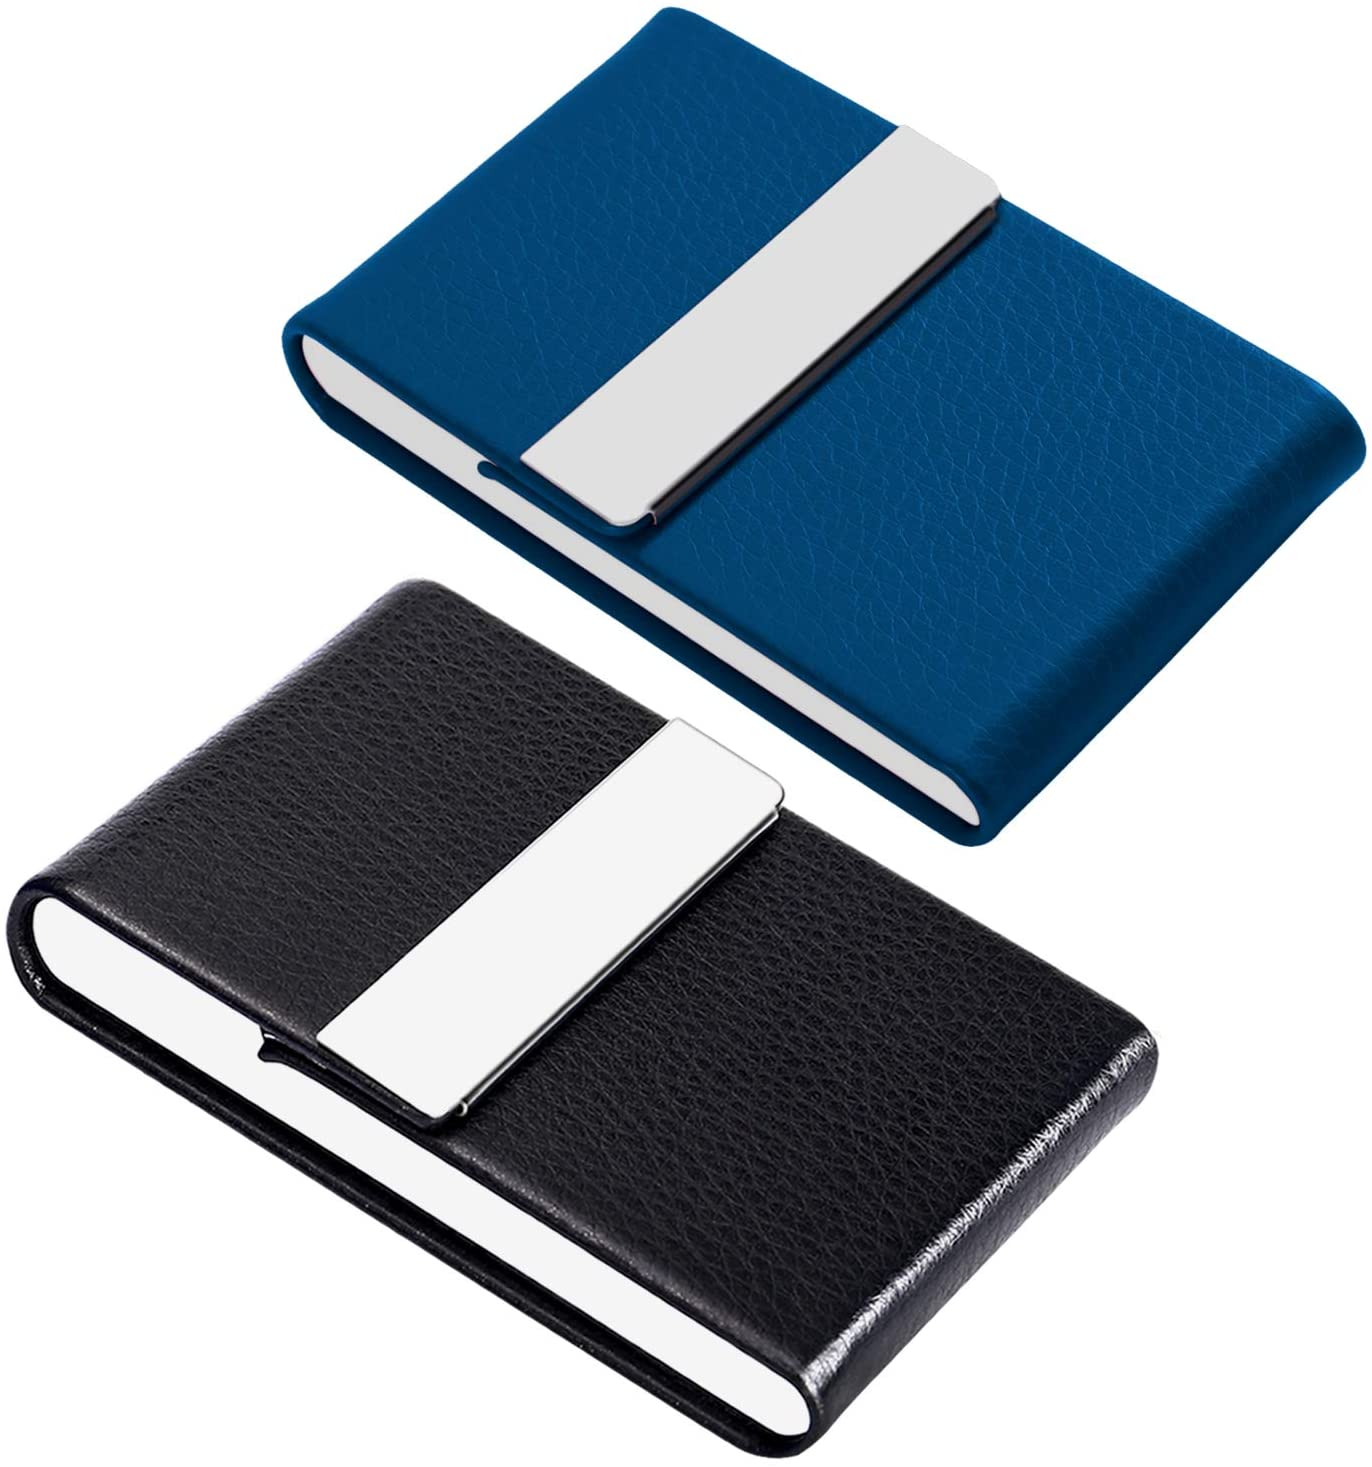 JuneLsy Business Card Holder - Professional PU Leather Business Card Case Metal Name Card Holder Pocket Business Card Carrier for Men & Women with Magnetic Shut, Pack of 2, (Black/Blue) Y